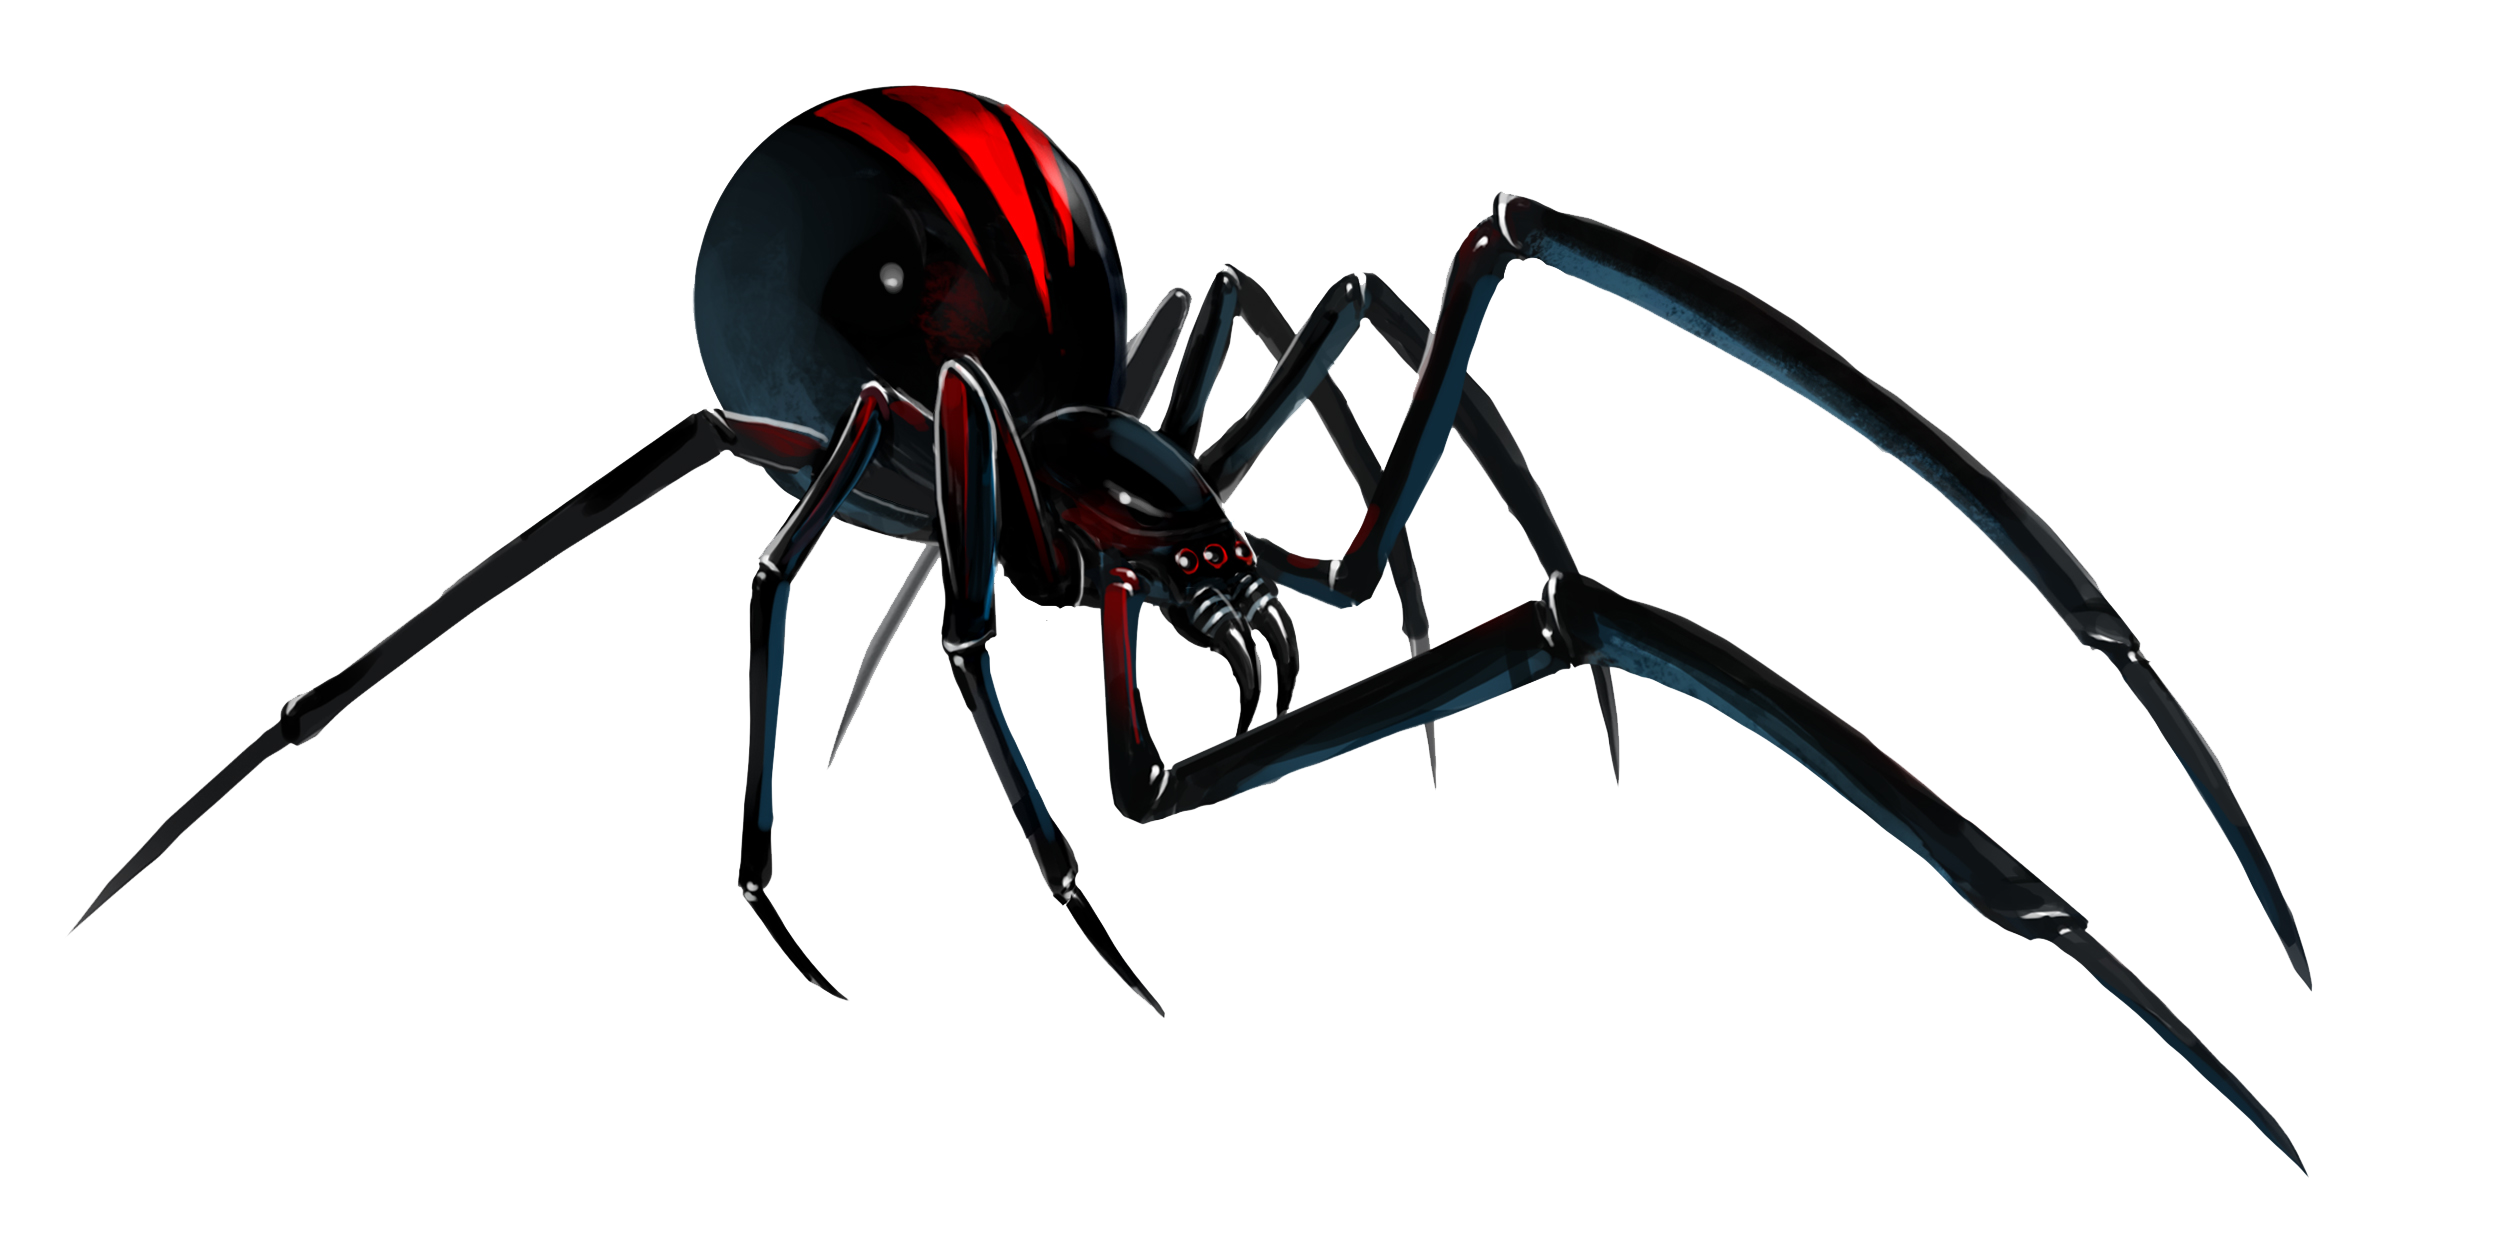 Black widow file mart. Spider png image royalty free stock